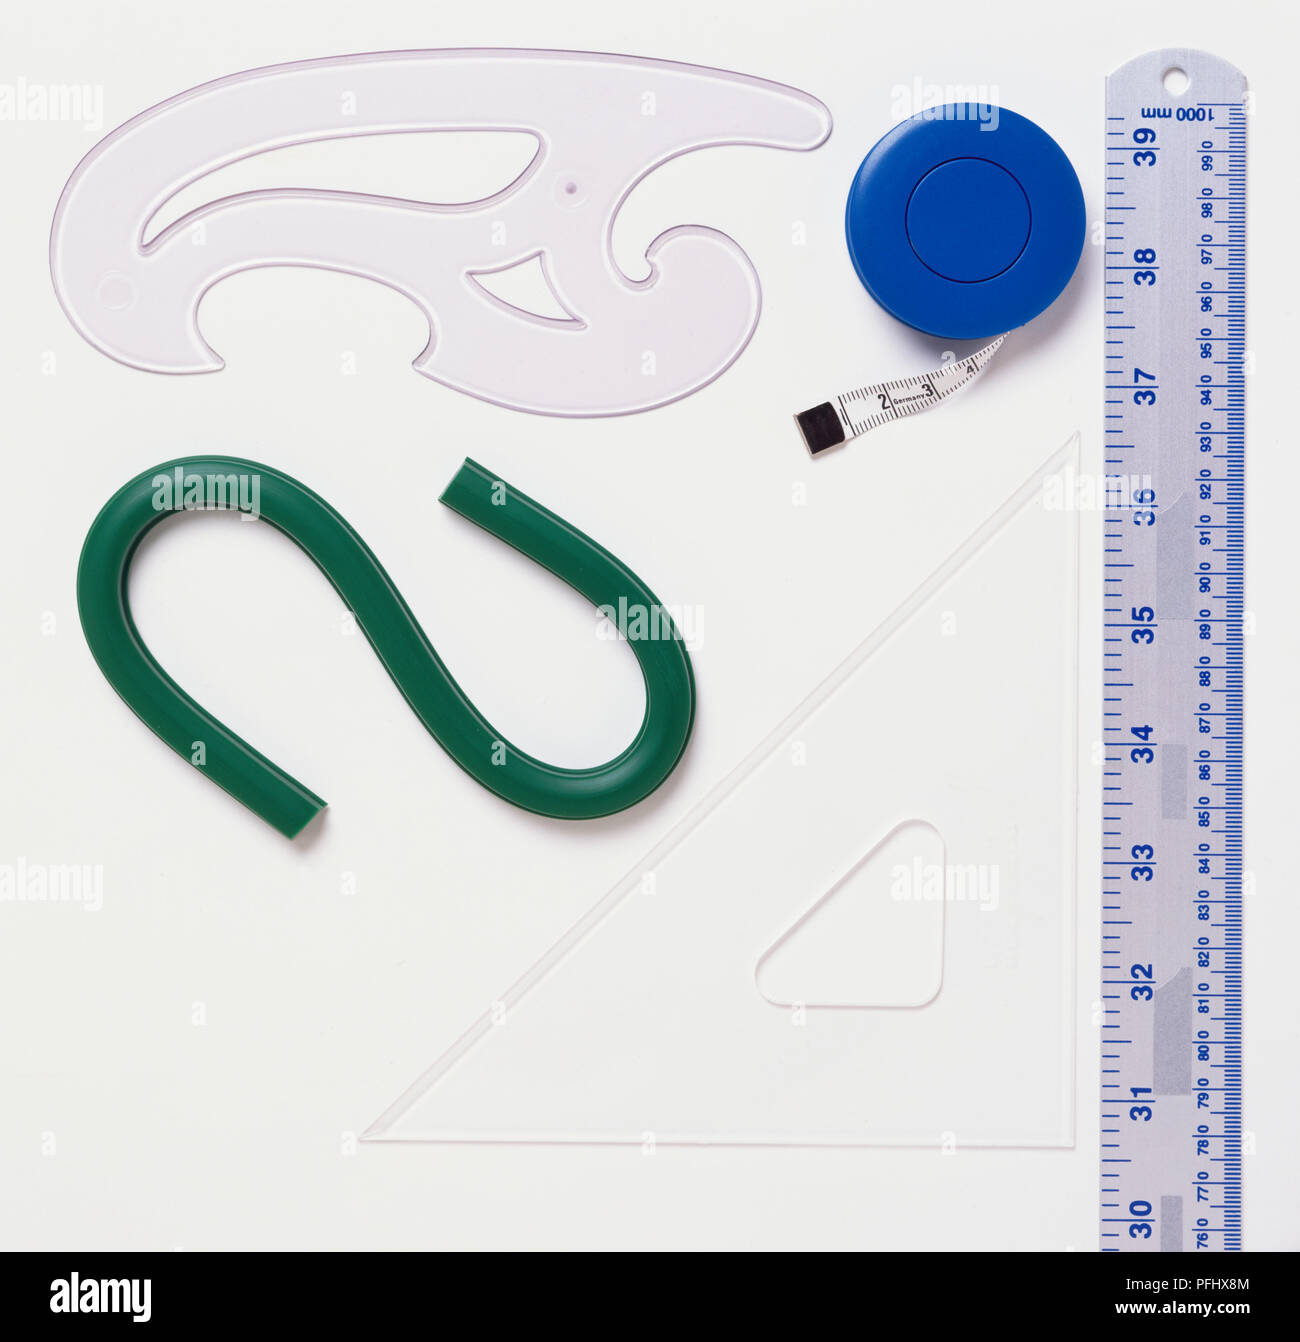 Ruler, retractable tape measure, French curve, flexible curve and set square. - Stock Image